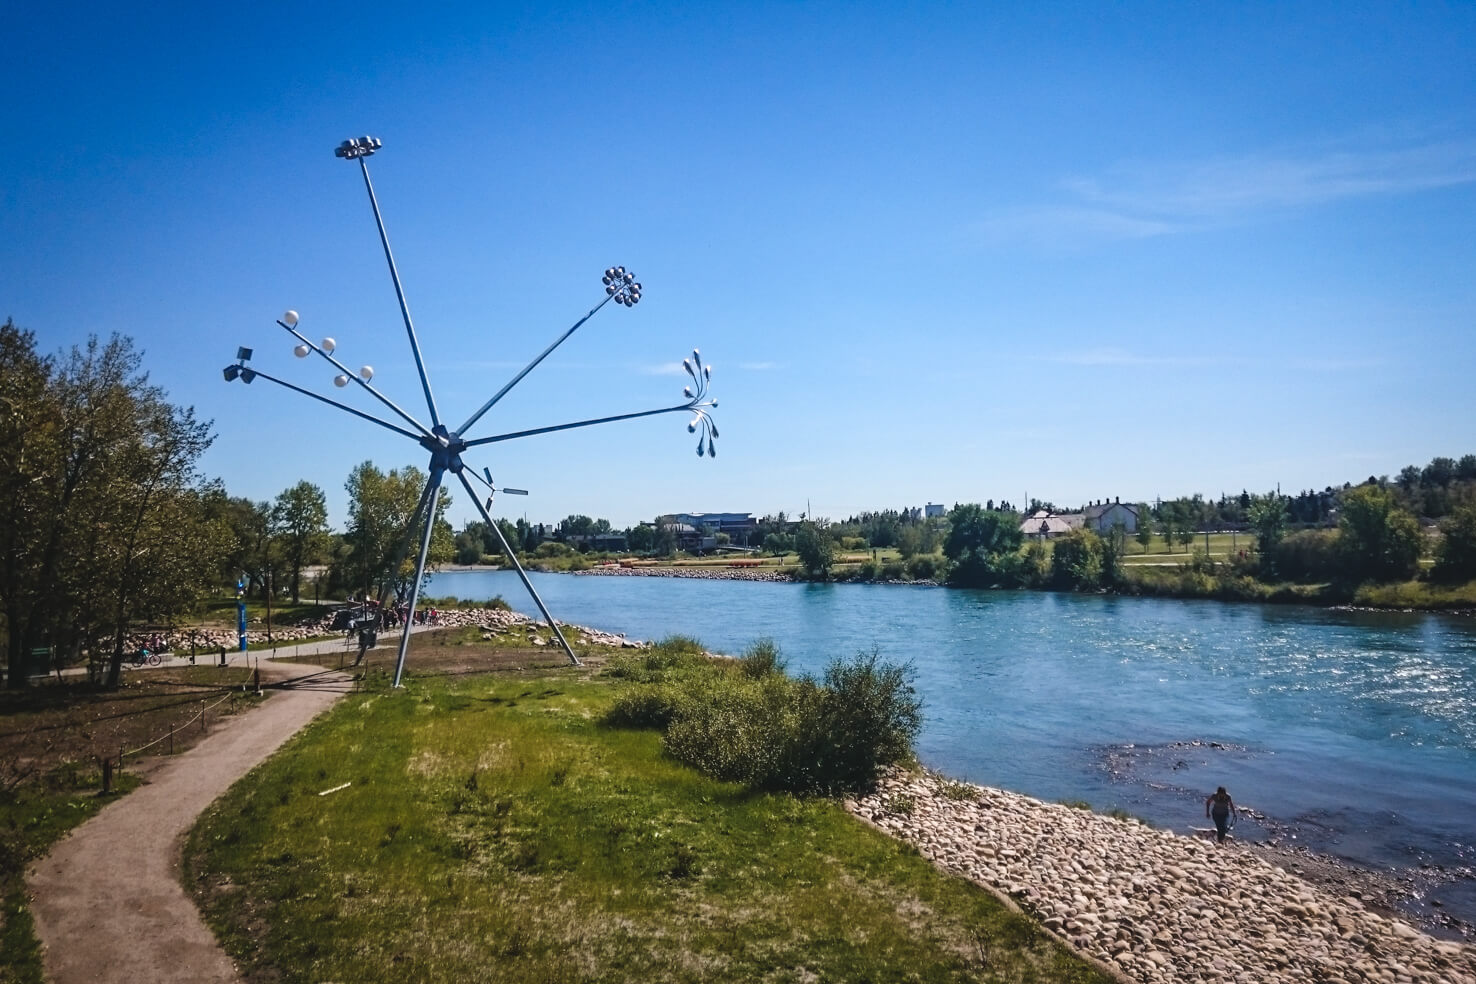 Things to do in Calgary in summer - Relax in St. Patrick's Island Park